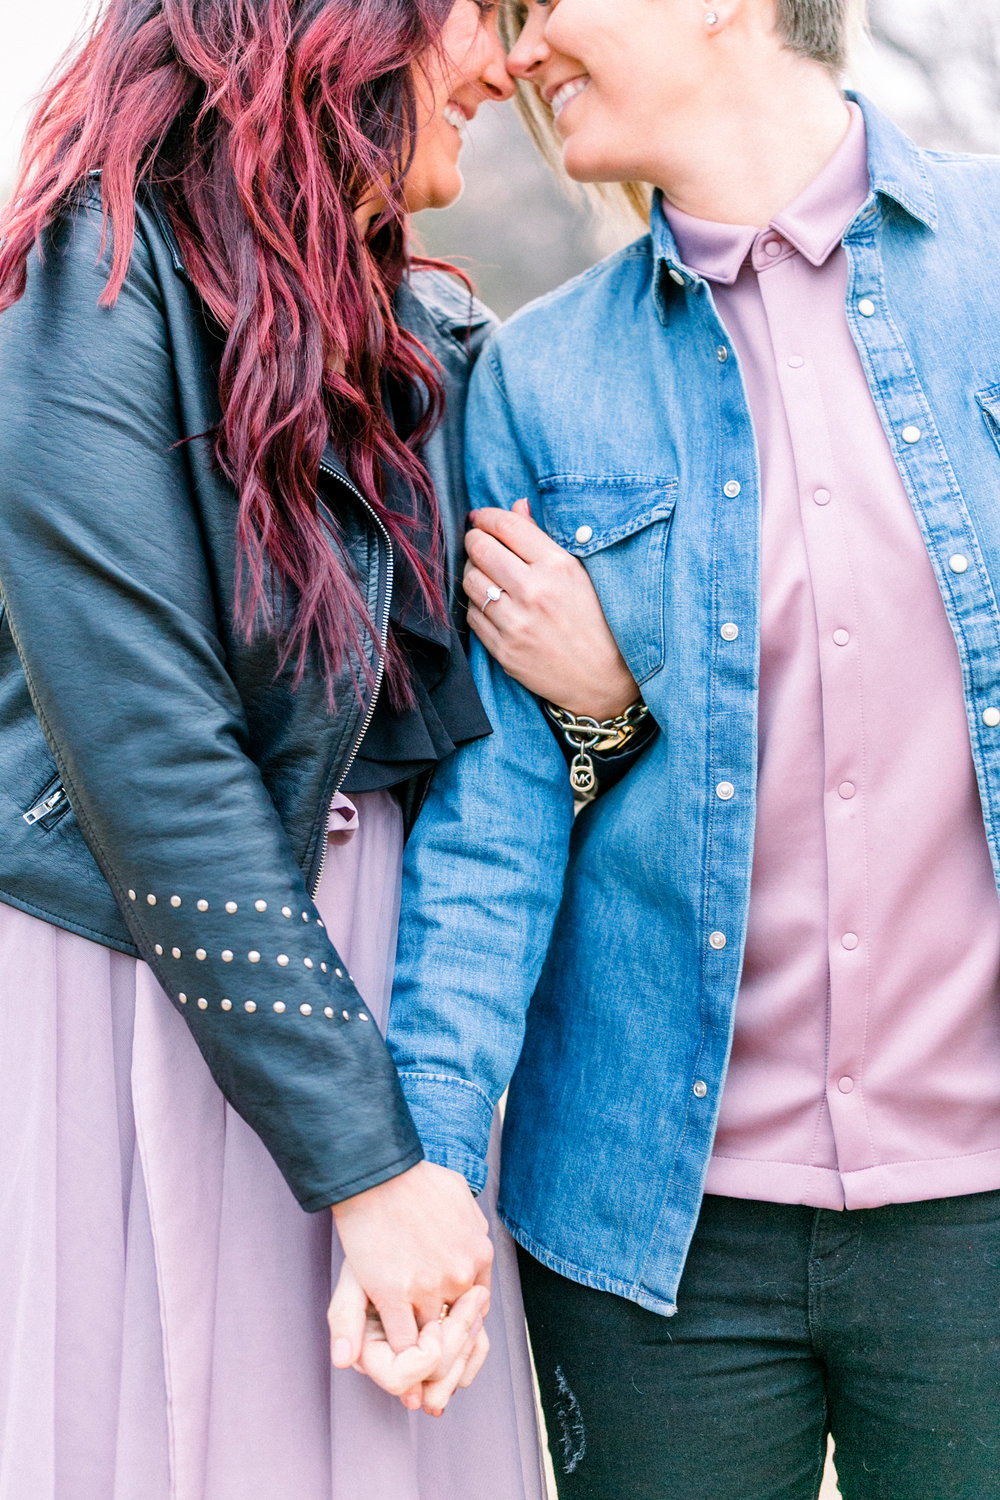 Dallas Lesbian Engagement Session